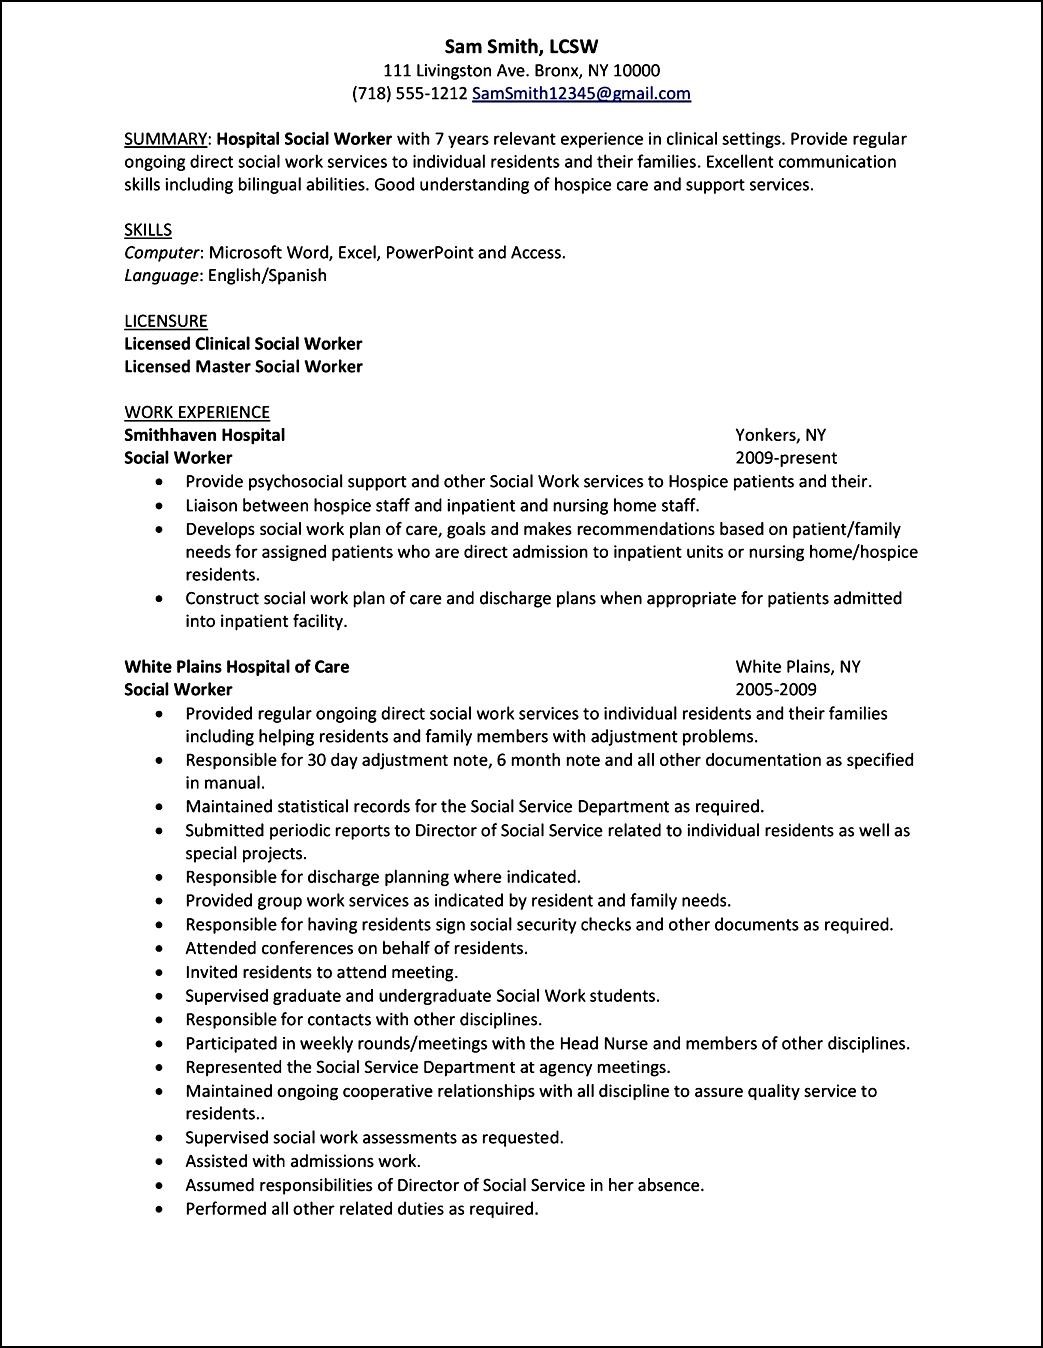 curriculum vitae template for social workers